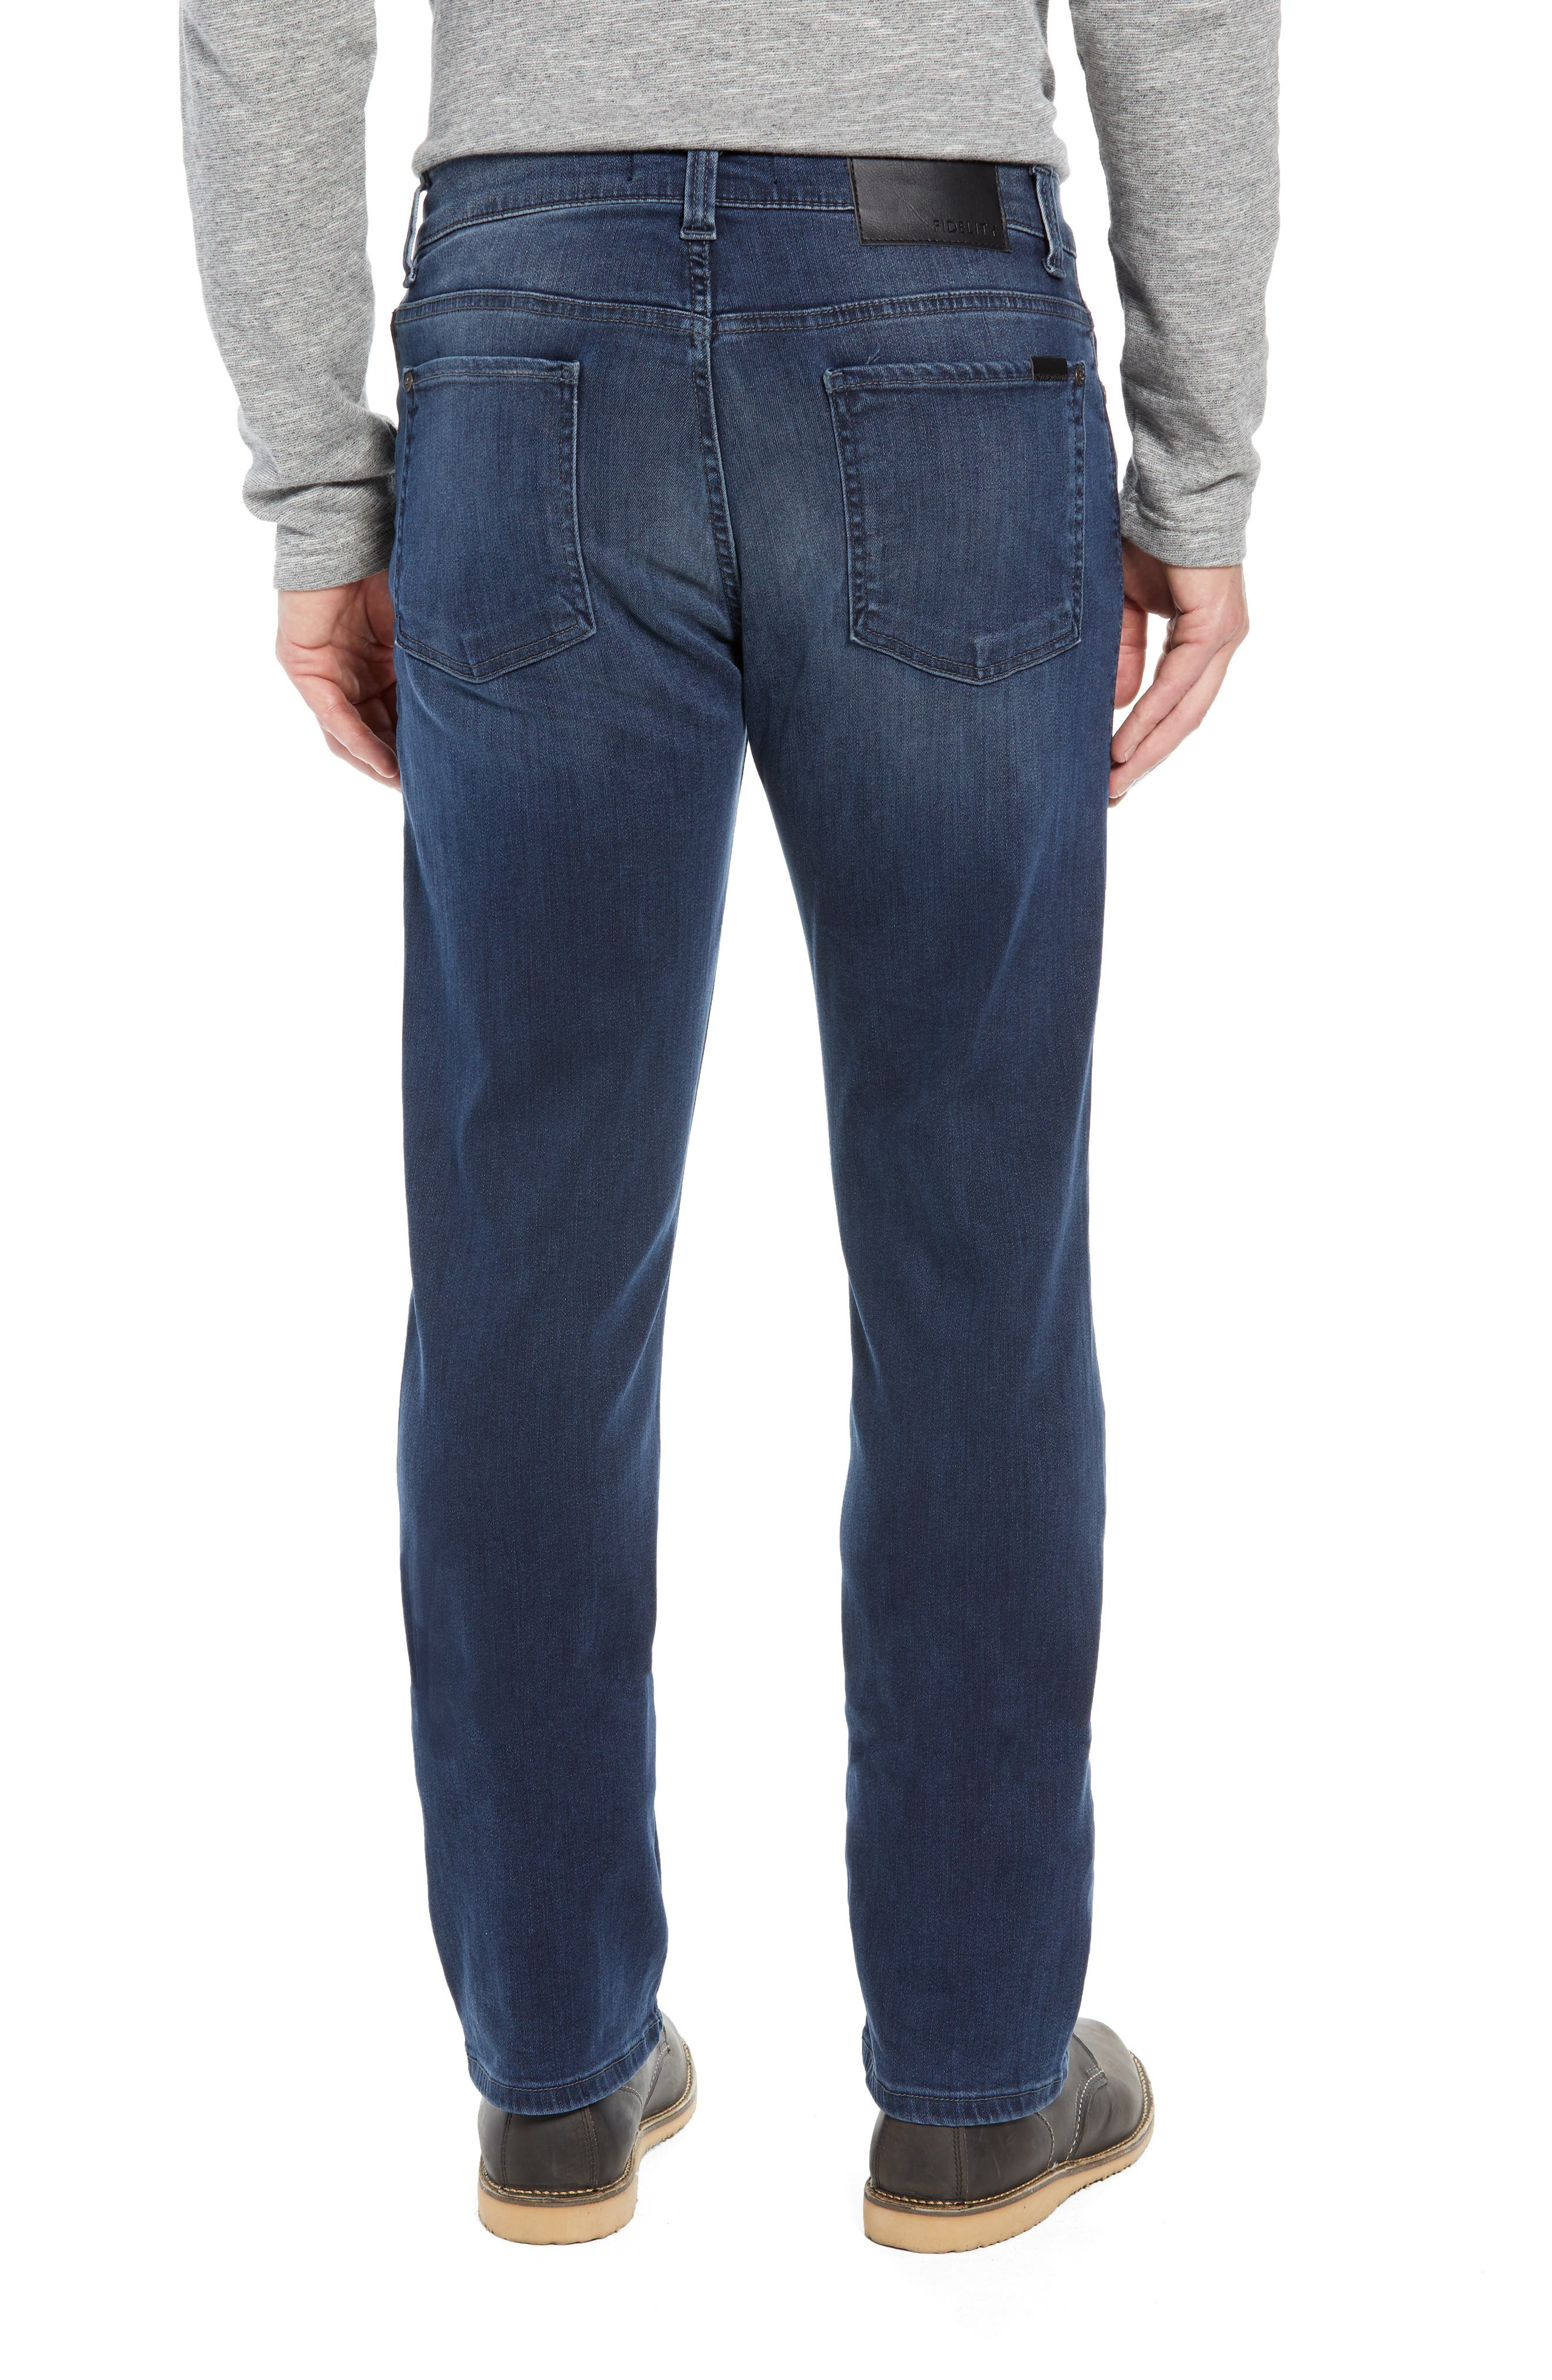 50-11 Relaxed Fit Jeans,                             Alternate thumbnail 2, color,                             BEL AIR BLUE